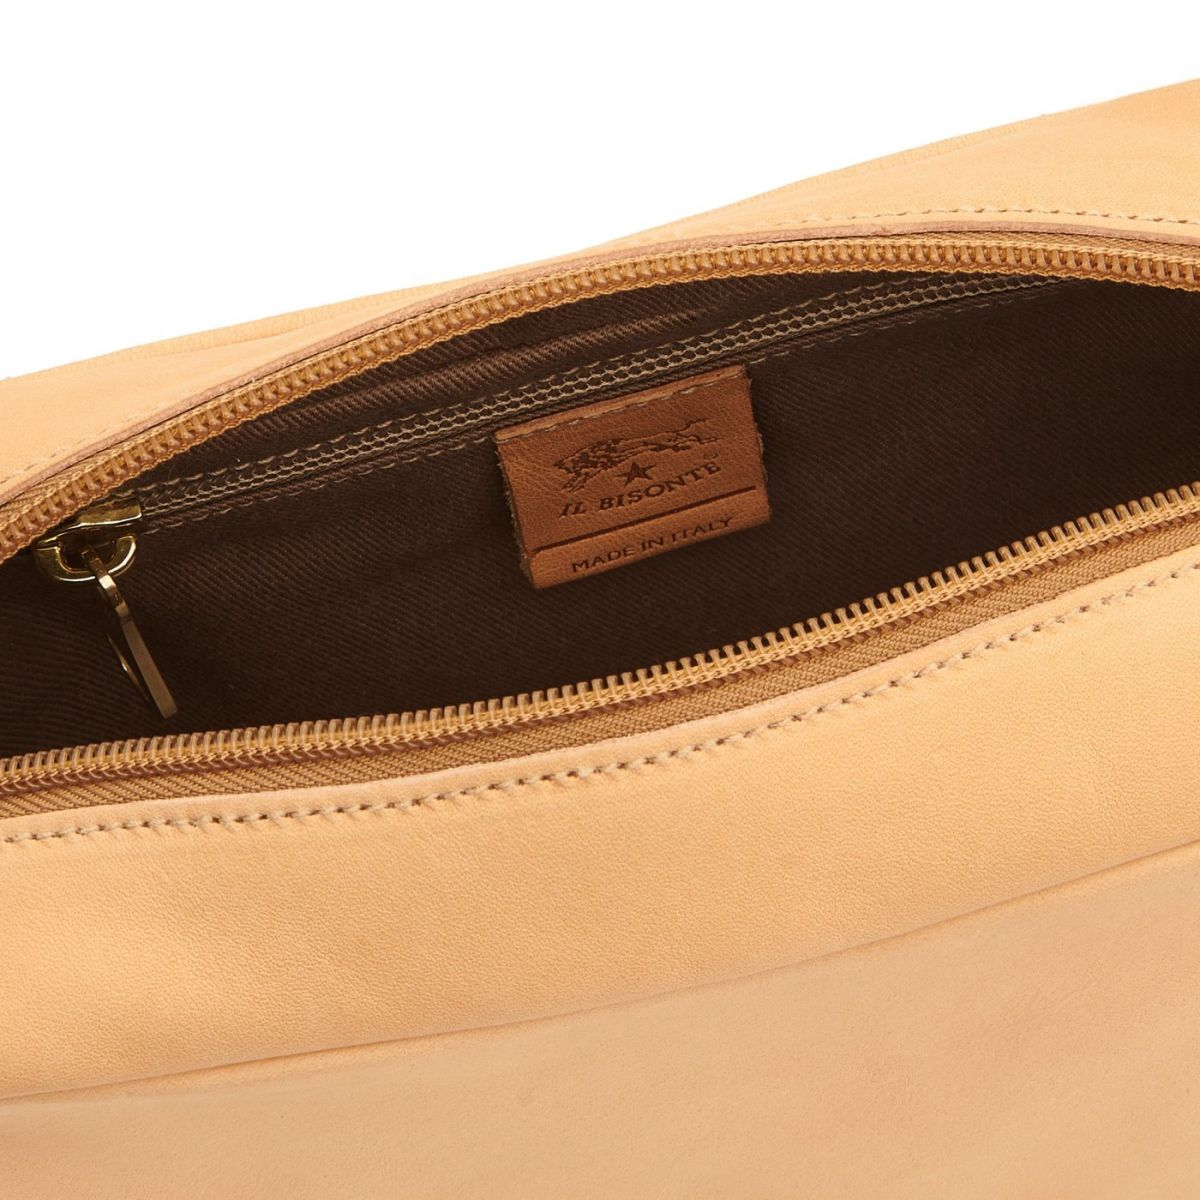 Women's Crossbody Bag Salina in Cowhide Leather BCR199 color Natural | Details